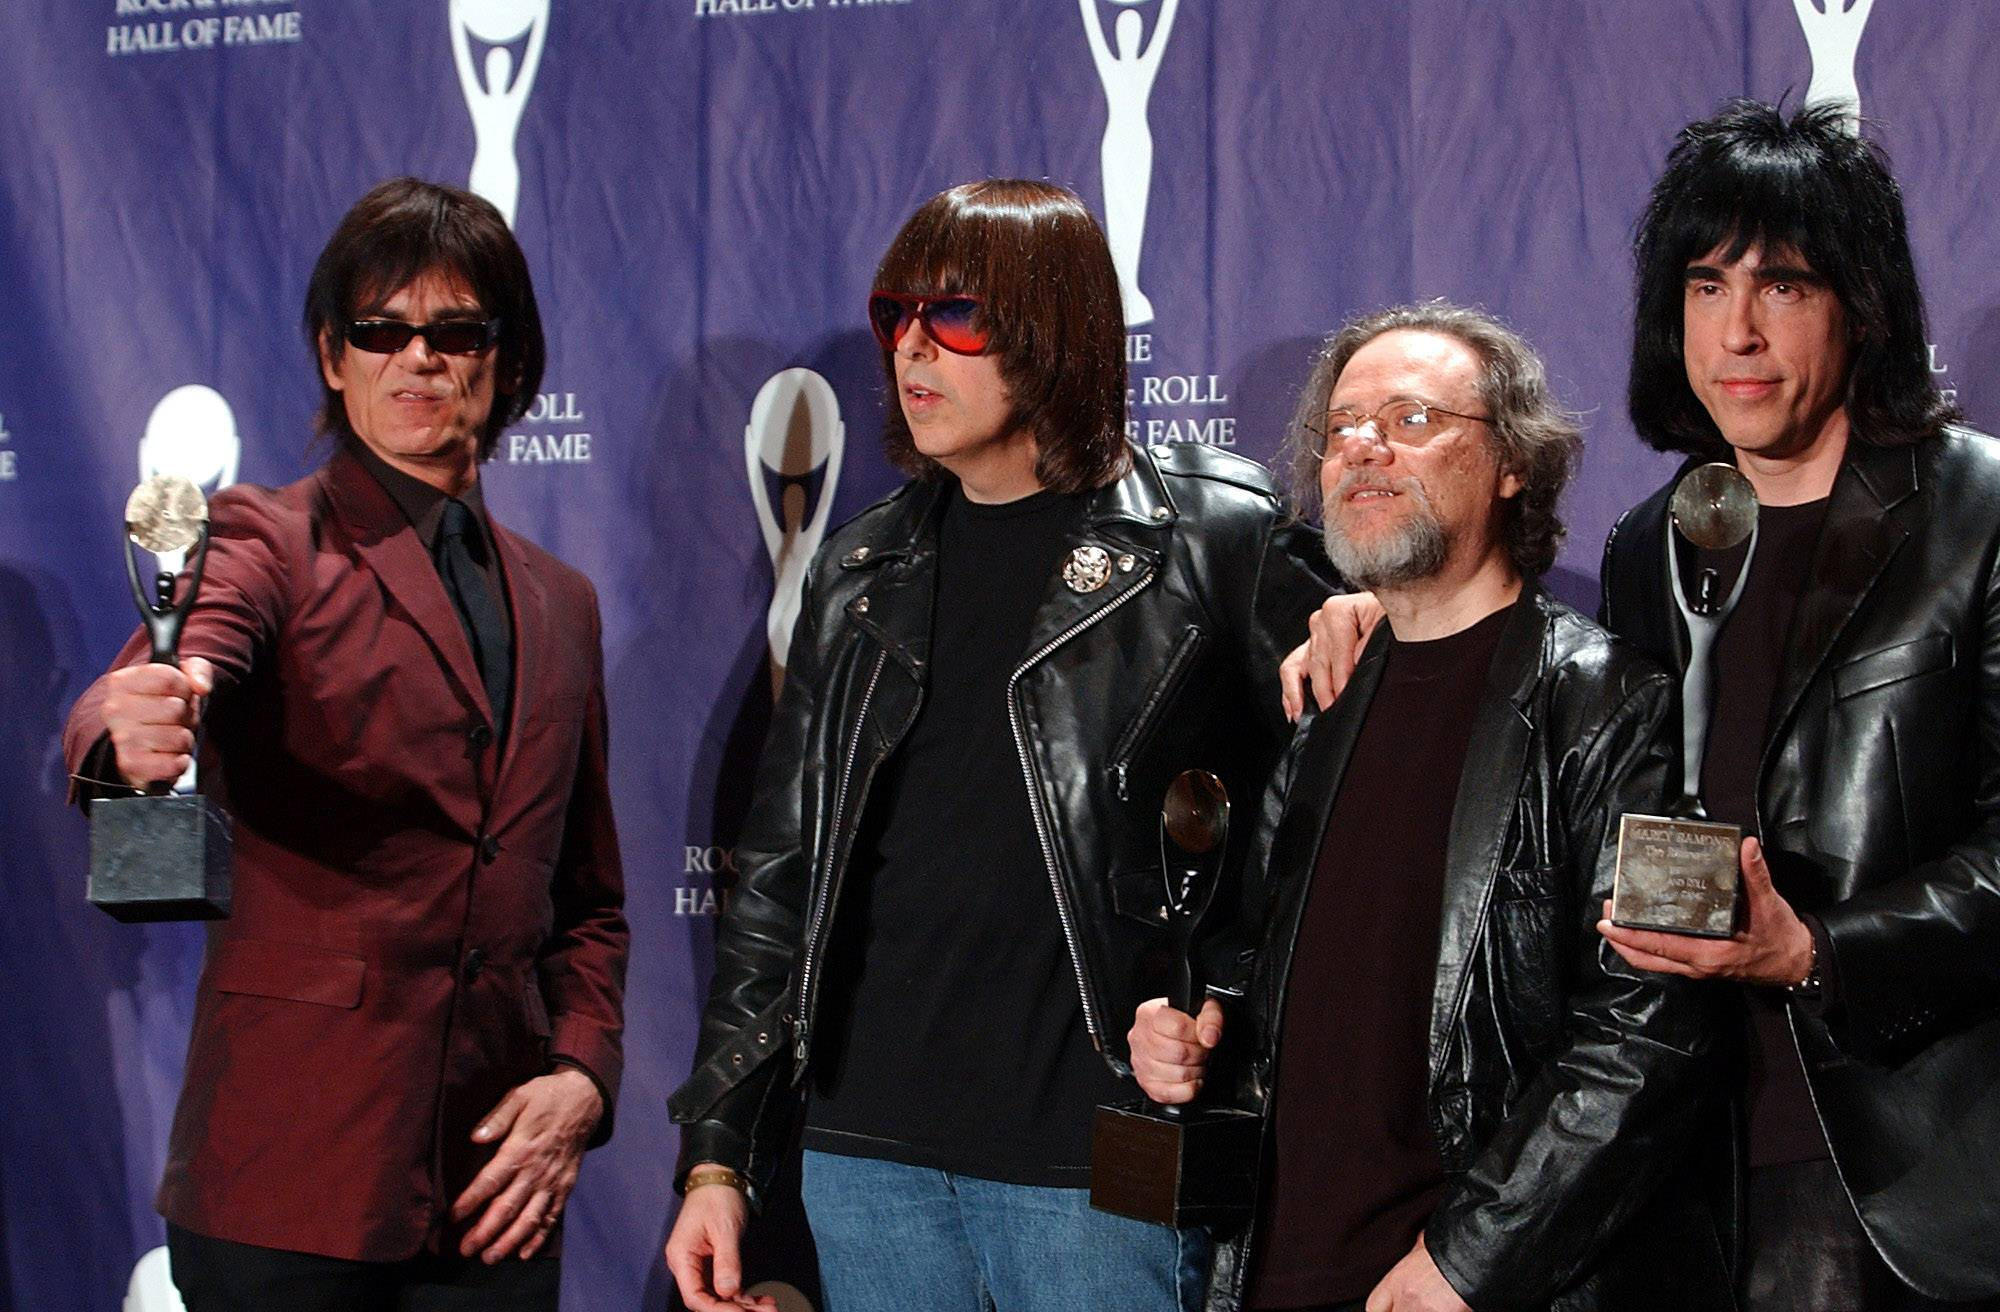 Members of the Ramones, from left to right, Dee Dee, Johnny, Tommy and Marky Ramone hold their awards after being inducted at the Rock and Roll Hall of Fame induction ceremony on March 18, 2002, at New York's Waldorf Astoria. A business associate says Tommy, the last surviving member of the original group, died on Friday, July 11.